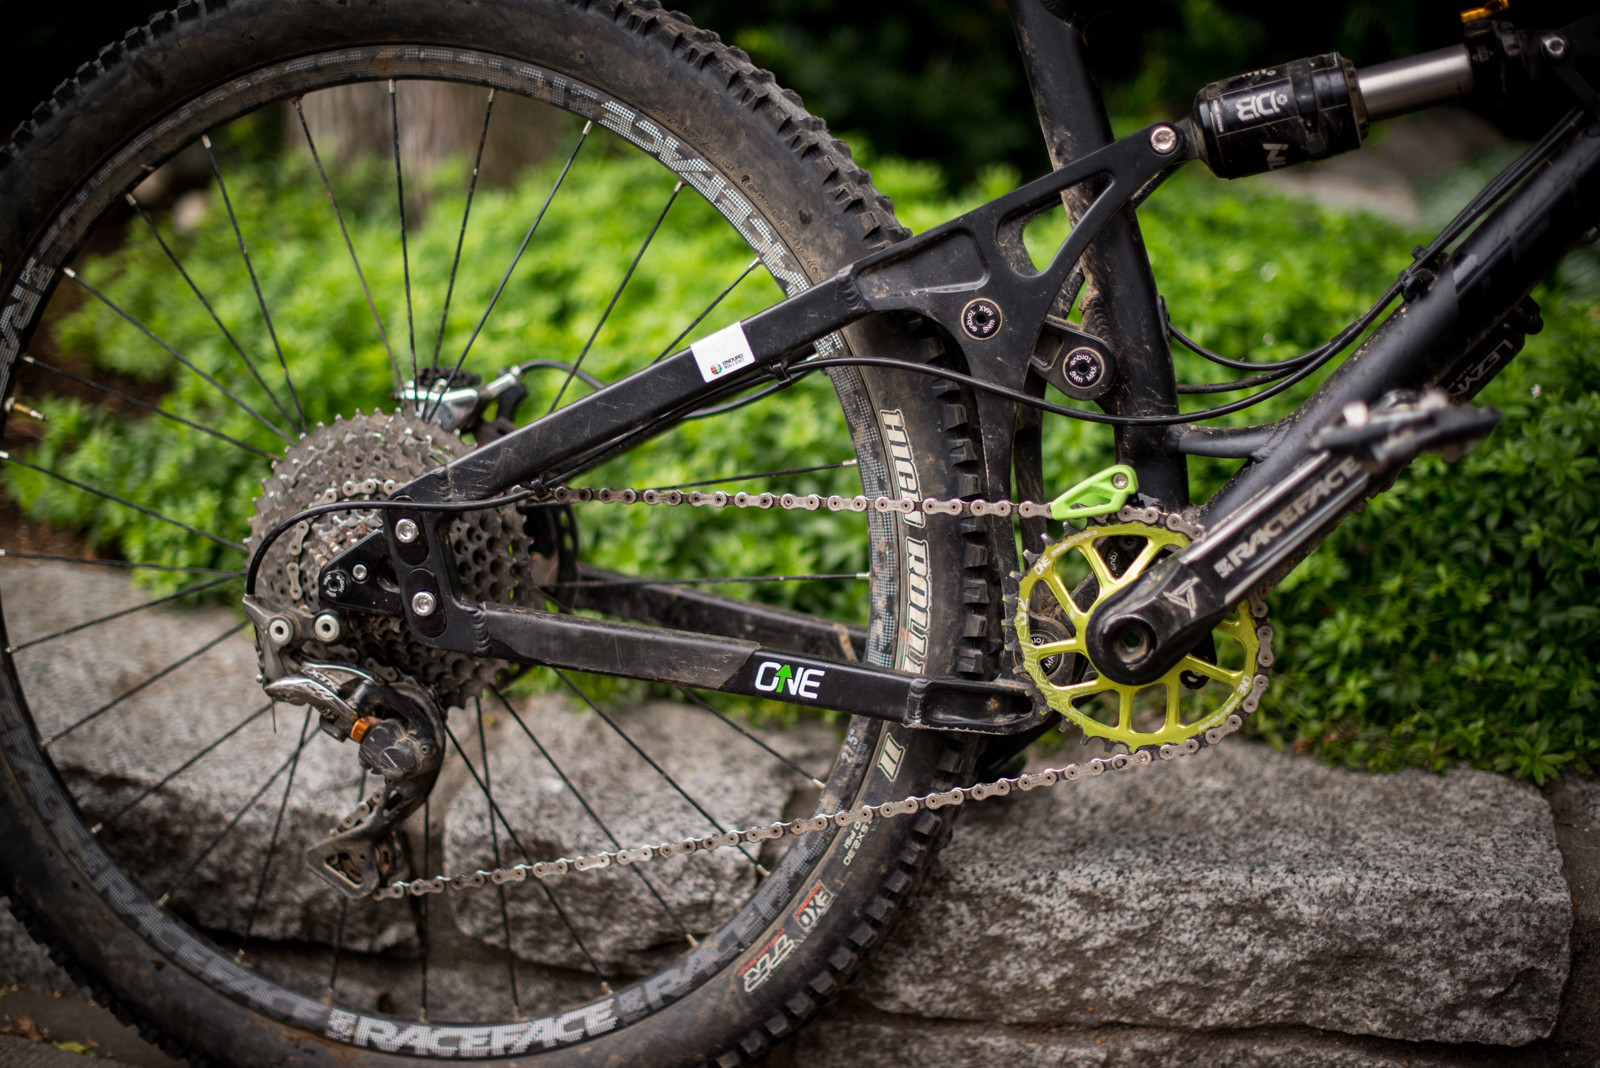 Prototype 10-45 Tooth Cassette and Chainguide from OneUp - PIT BITS - New Products and Prototypes at Crankworx Whistler - Mountain Biking Pictures - Vital MTB